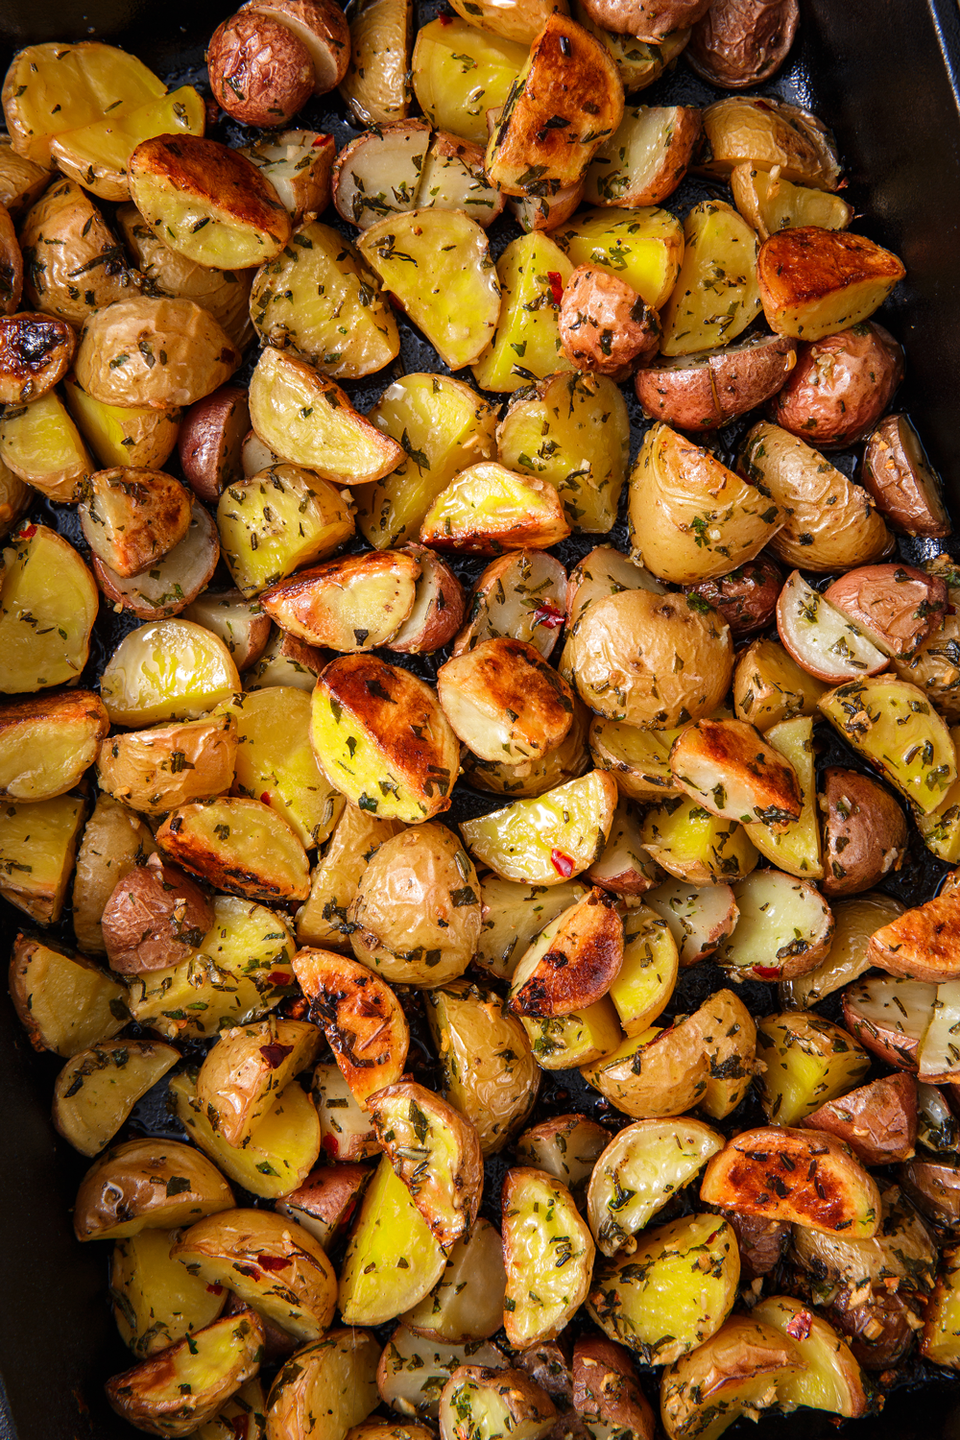 """<p>These easy potatoes will make your house smell sooo good.</p><p>Get the recipe from <a href=""""https://www.delish.com/cooking/recipe-ideas/a22865719/herb-roasted-potatoes/"""" rel=""""nofollow noopener"""" target=""""_blank"""" data-ylk=""""slk:Delish"""" class=""""link rapid-noclick-resp"""">Delish</a>. </p>"""